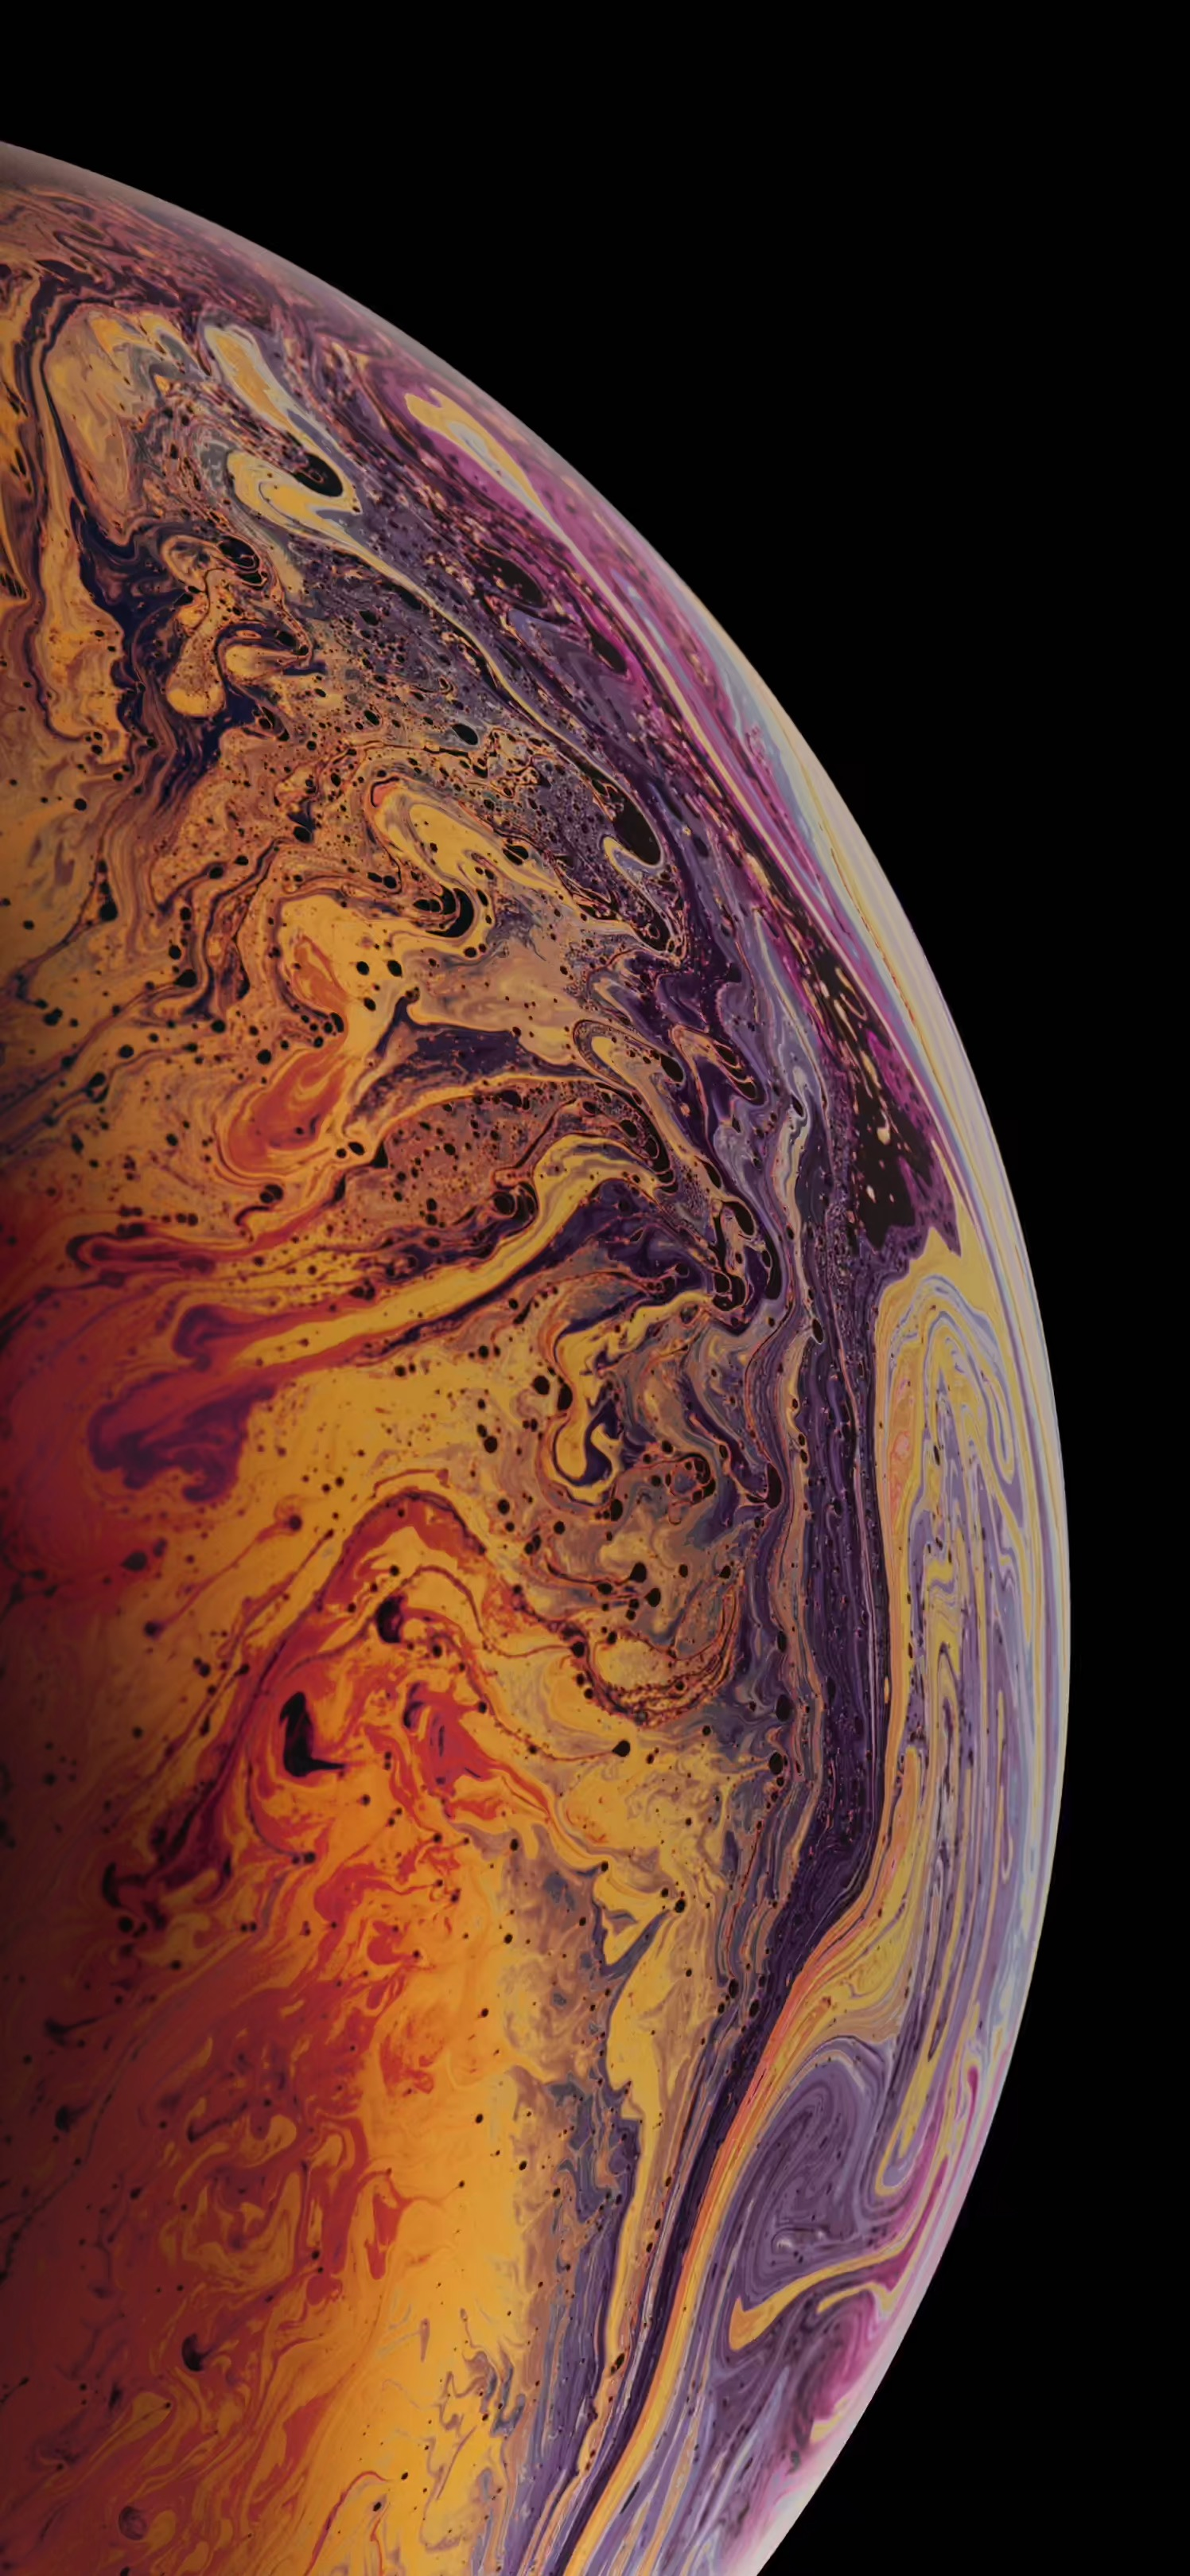 wallpaper iphone xs max full hd